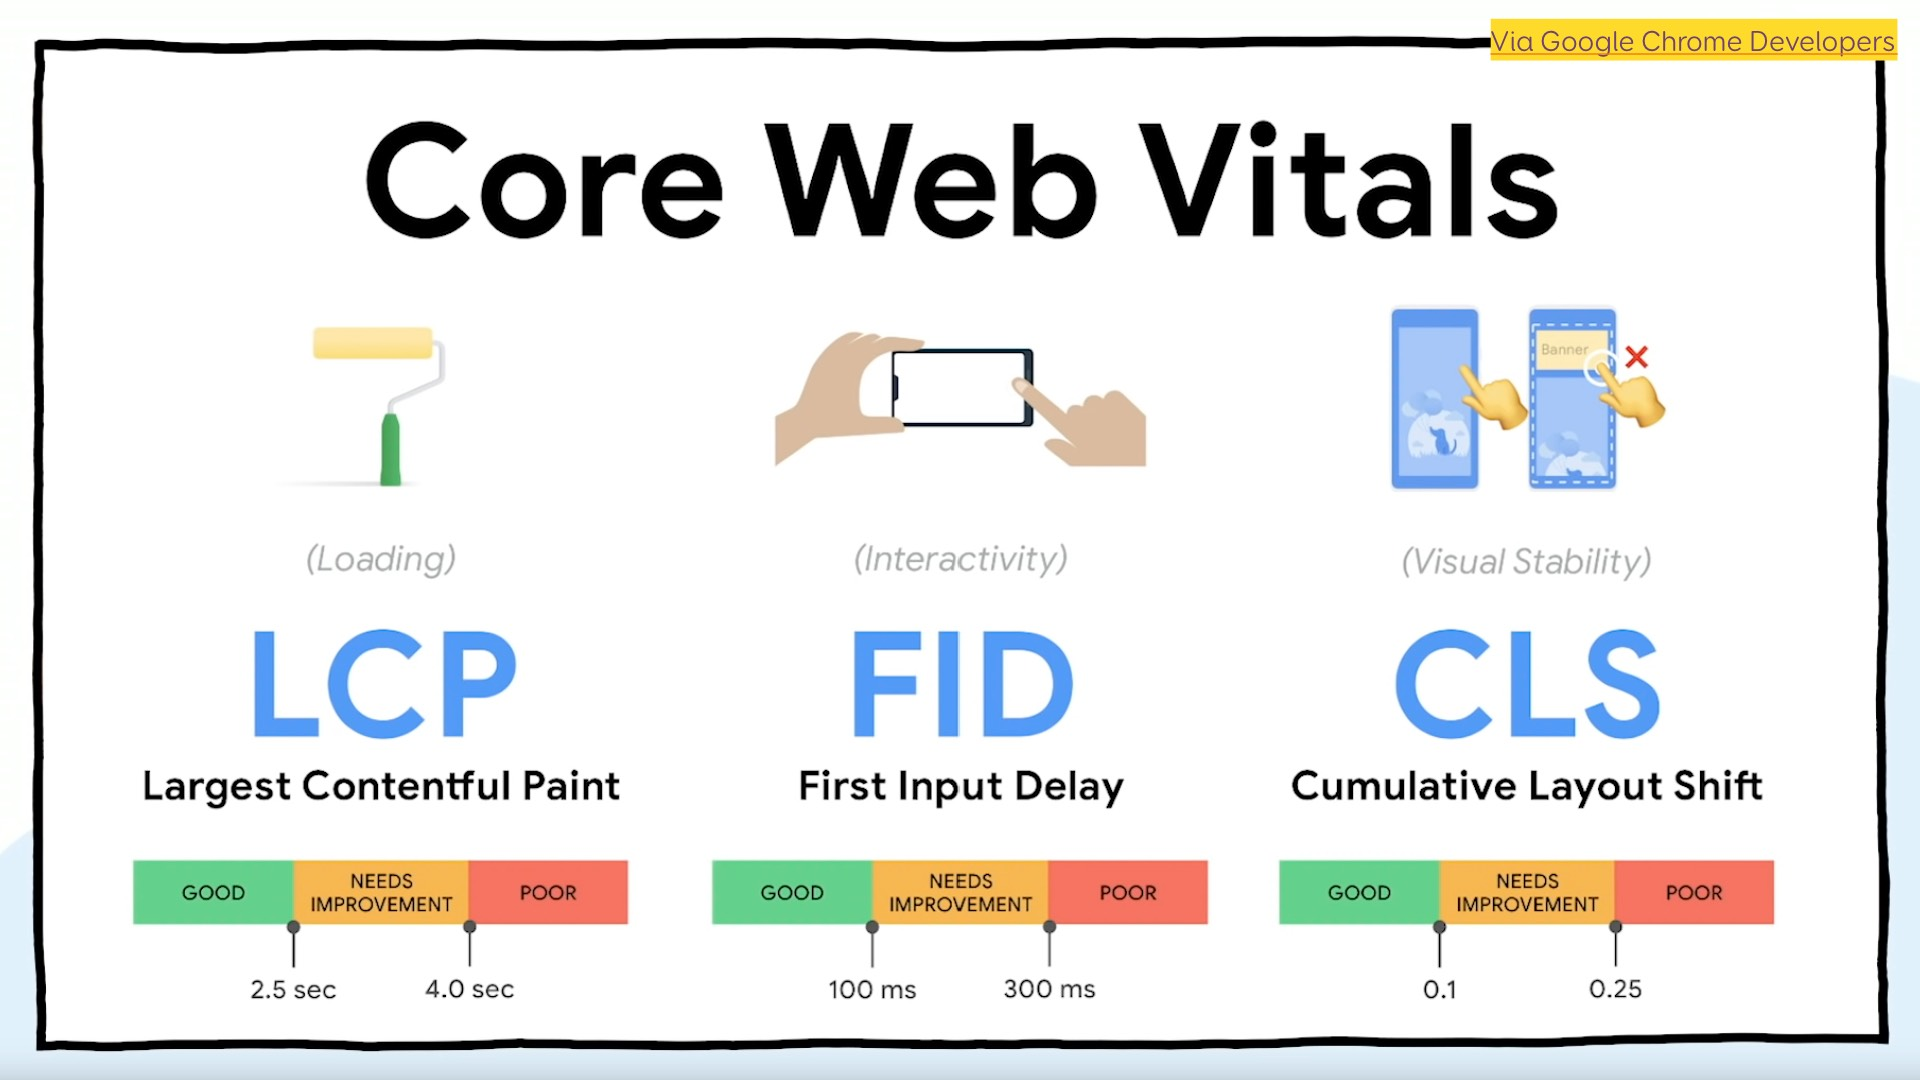 Core Web Vitals: LCP (largest contentful paint), FID (first input delay), CLS (cumulative layout shift)